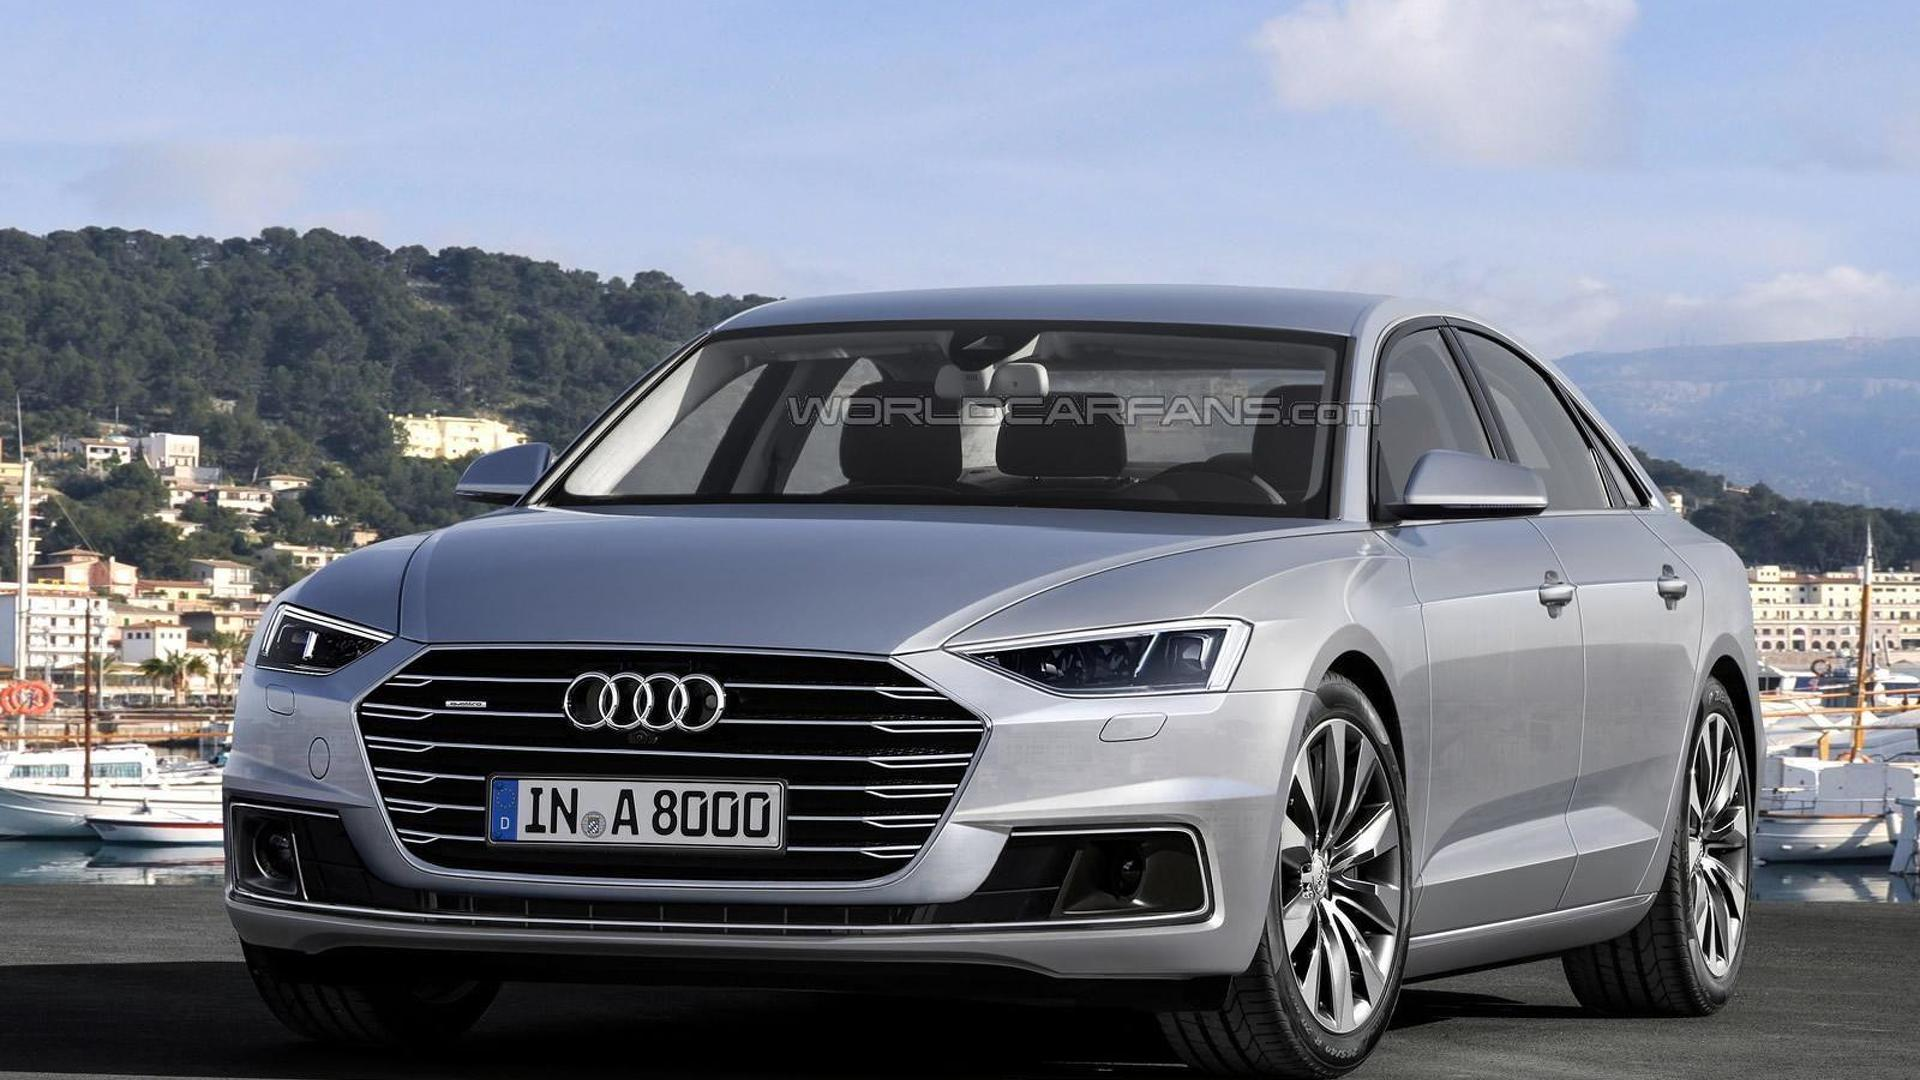 Next-gen Audi A8 officially confirmed for 2017 launch